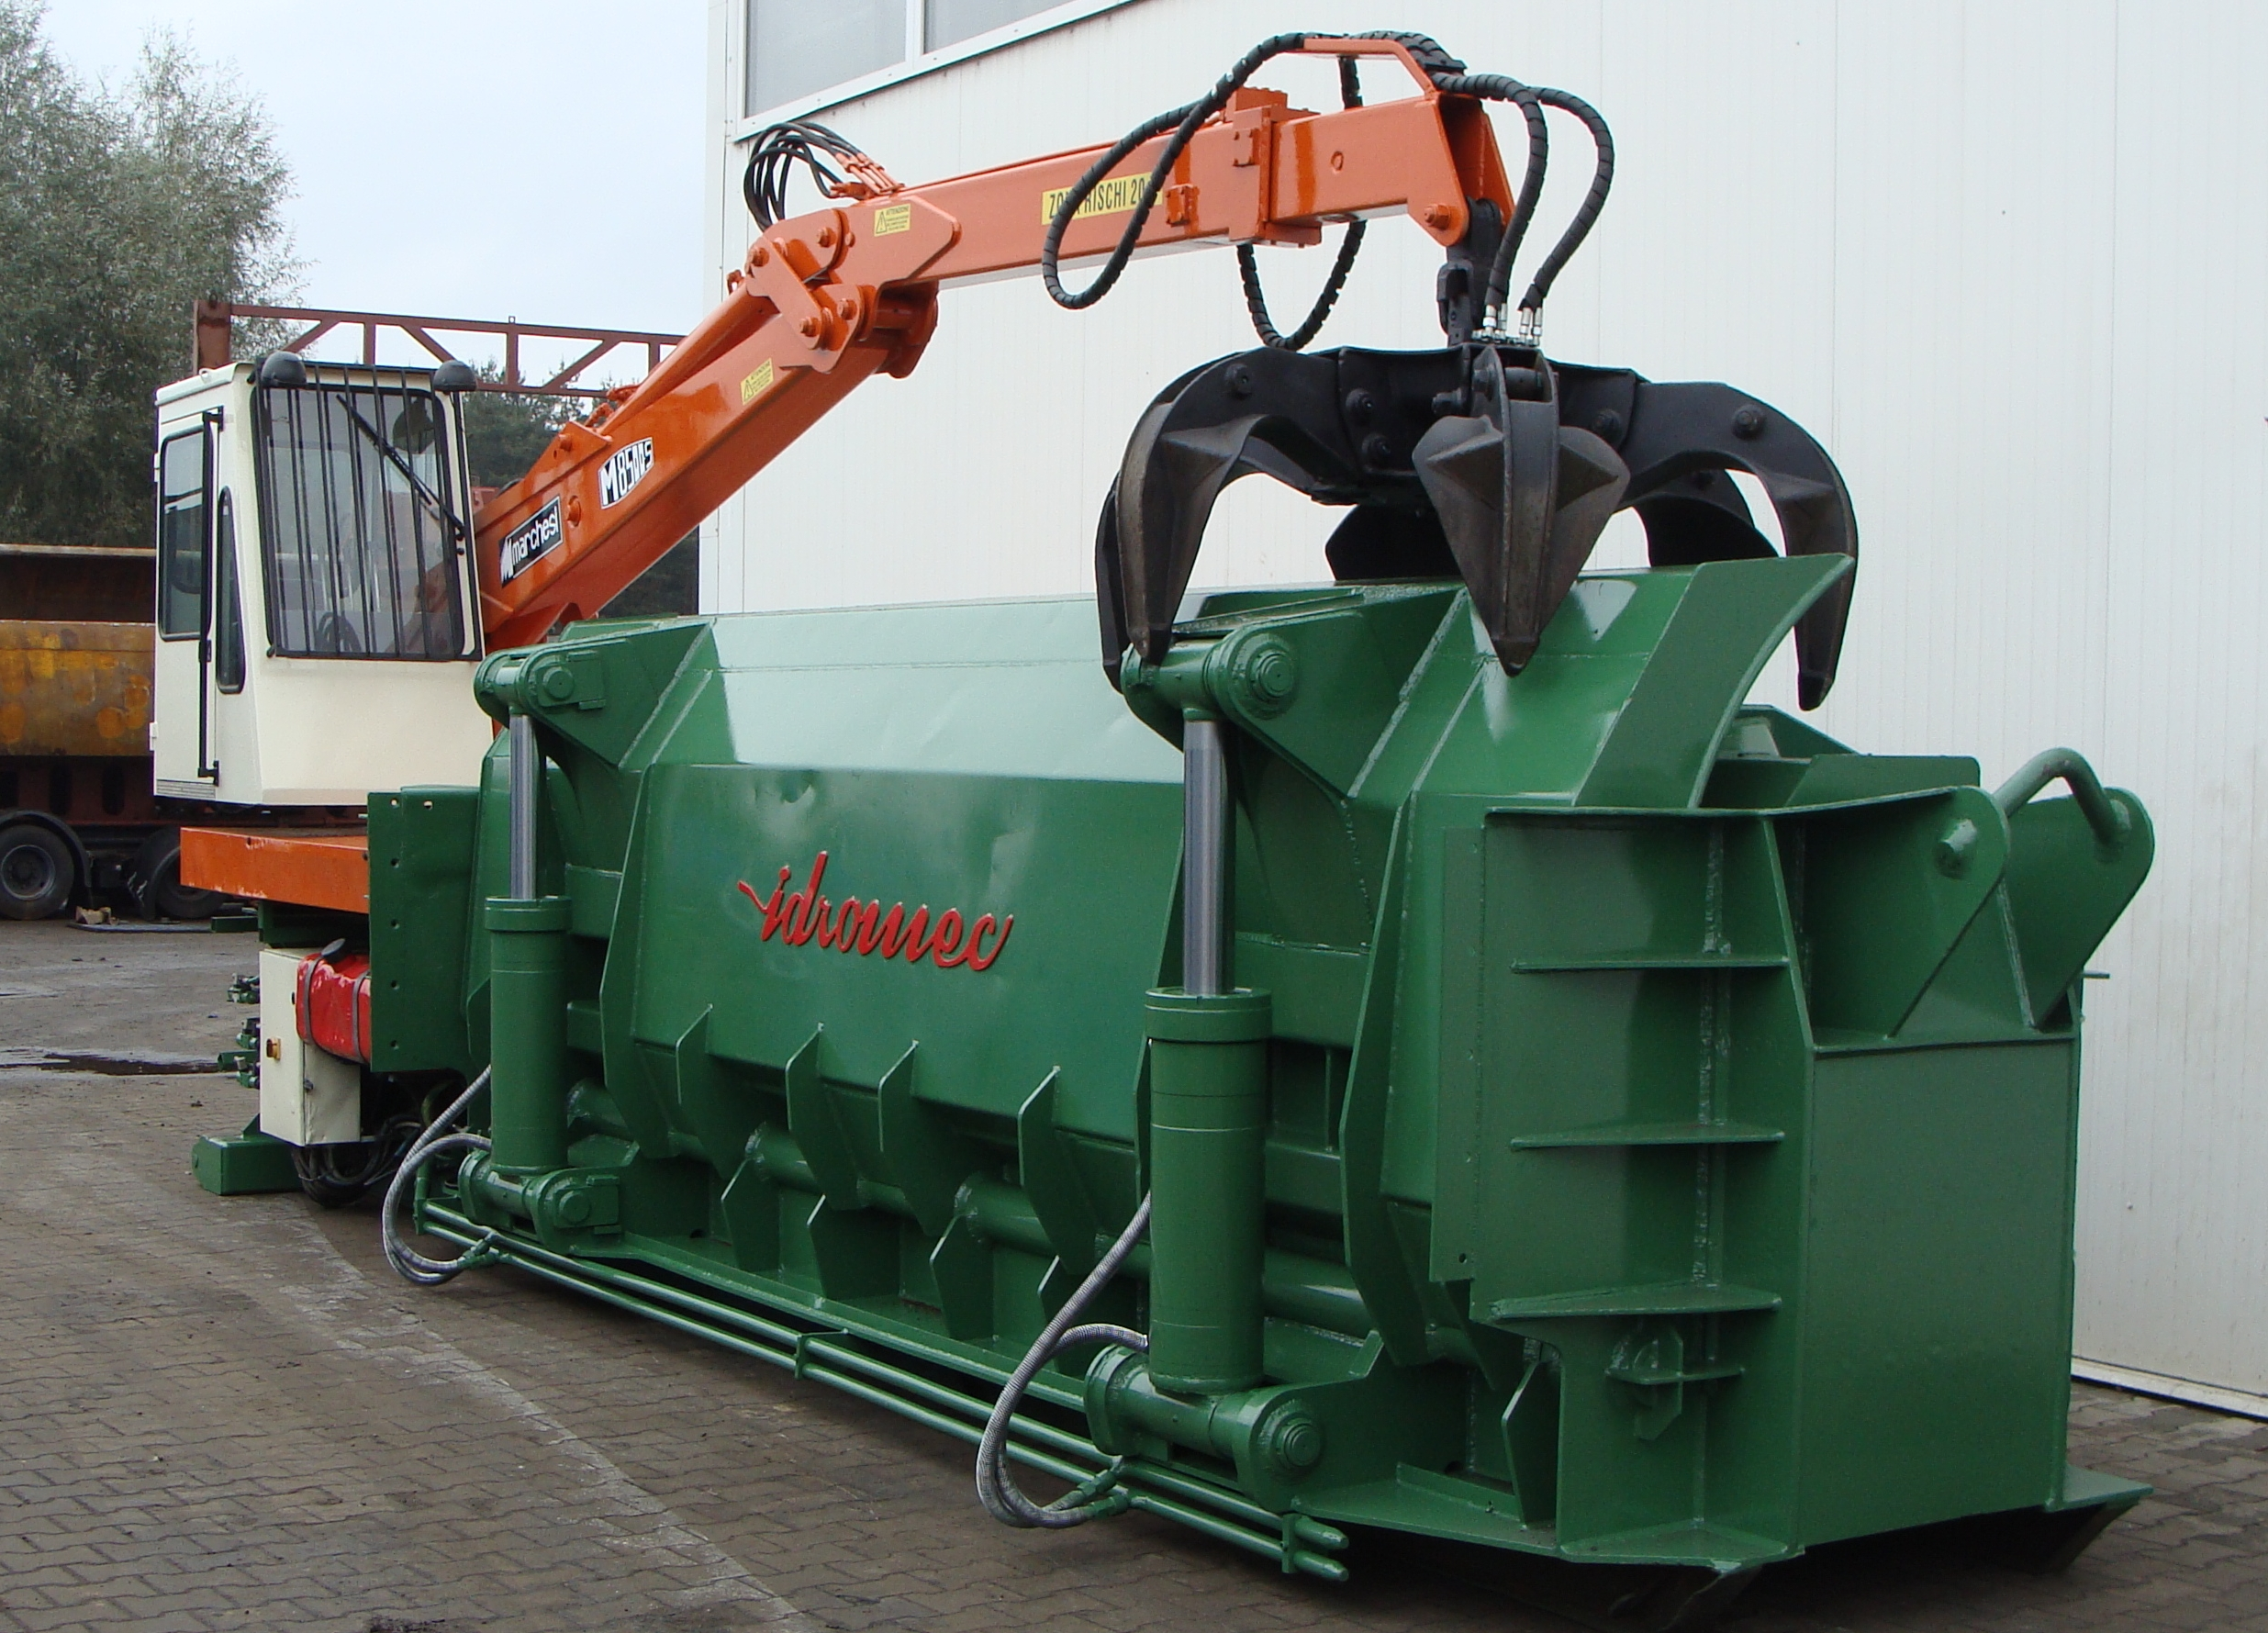 Machines for metal recycling